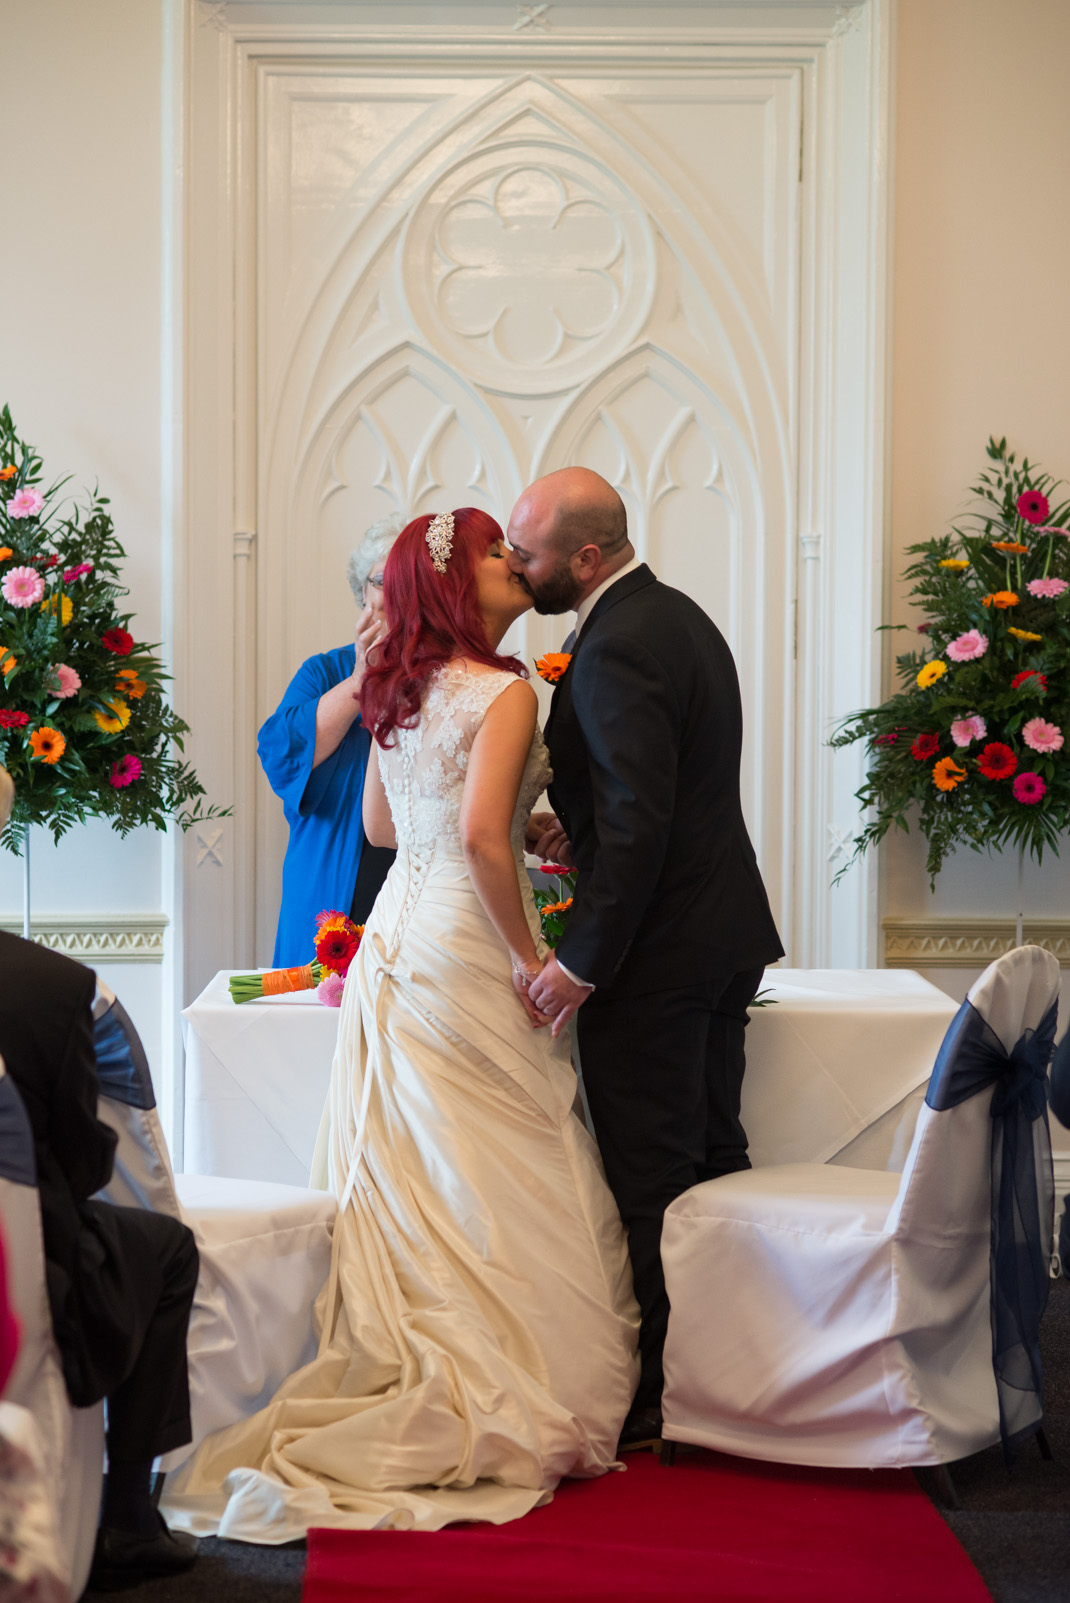 Marwell House, Zoo, kiss, altar, wedding ceremony